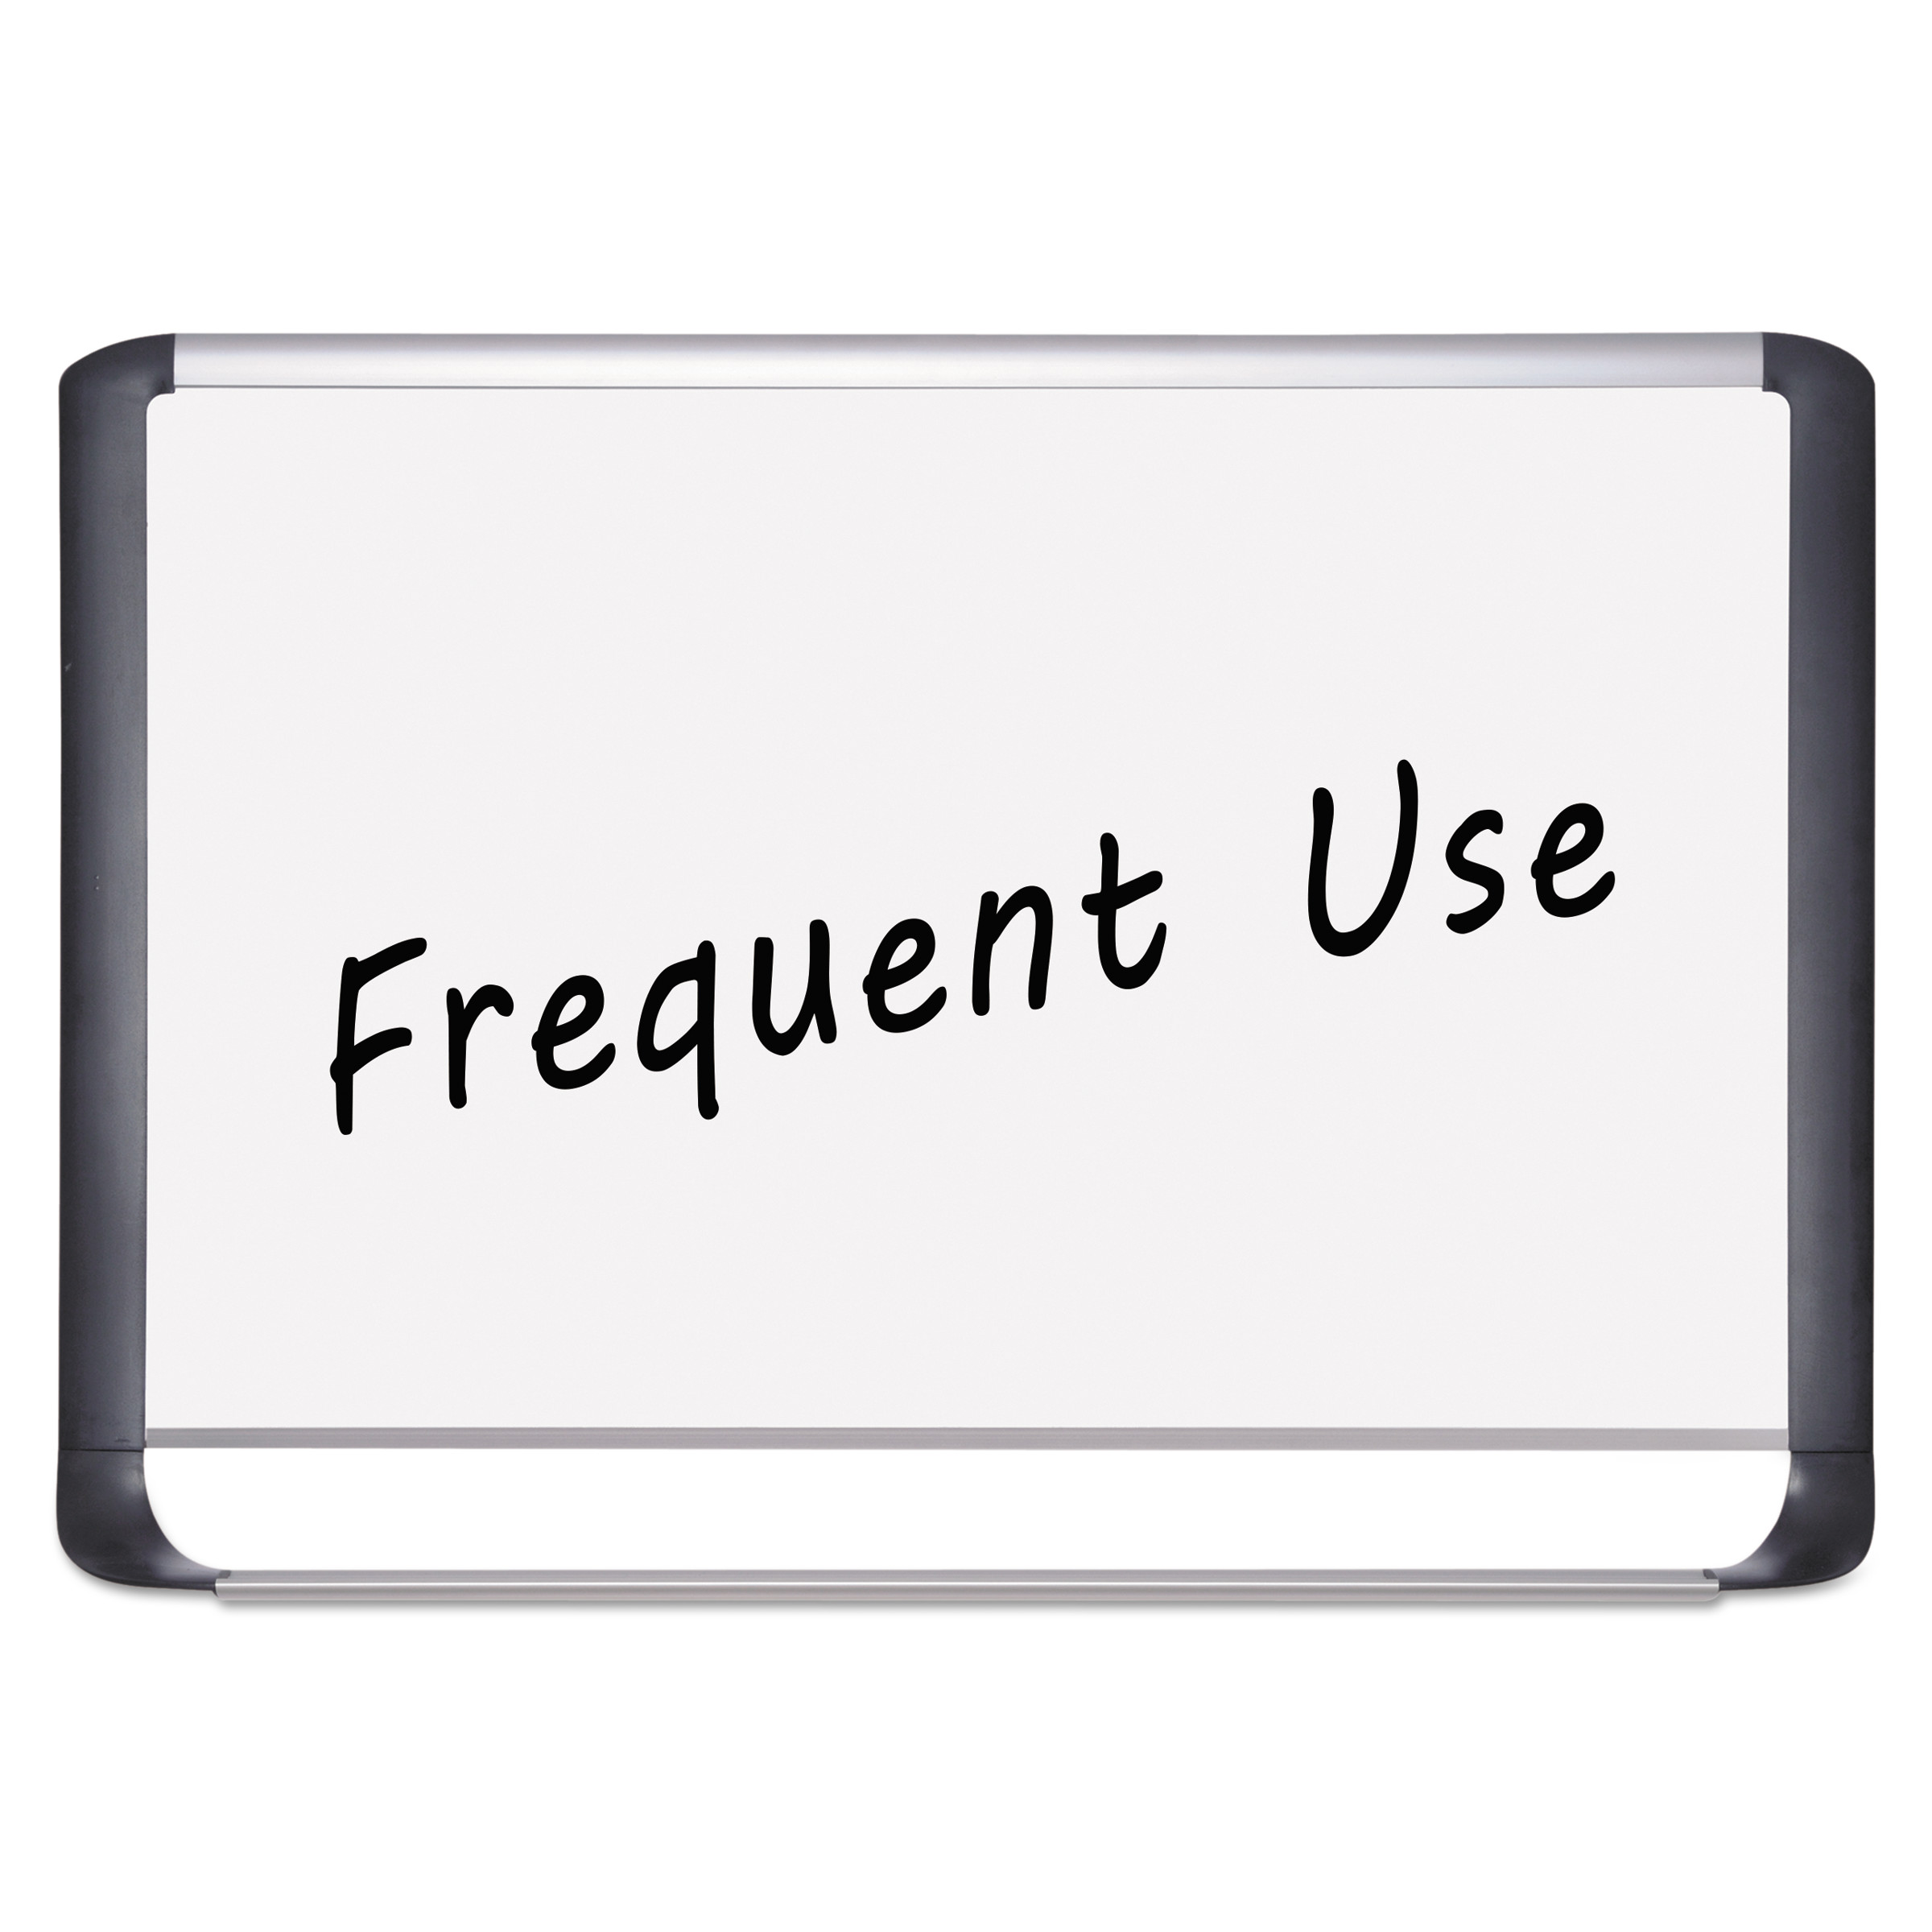 MasterVision Lacquered steel magnetic dry erase board, 36 x 48, Silver/Black